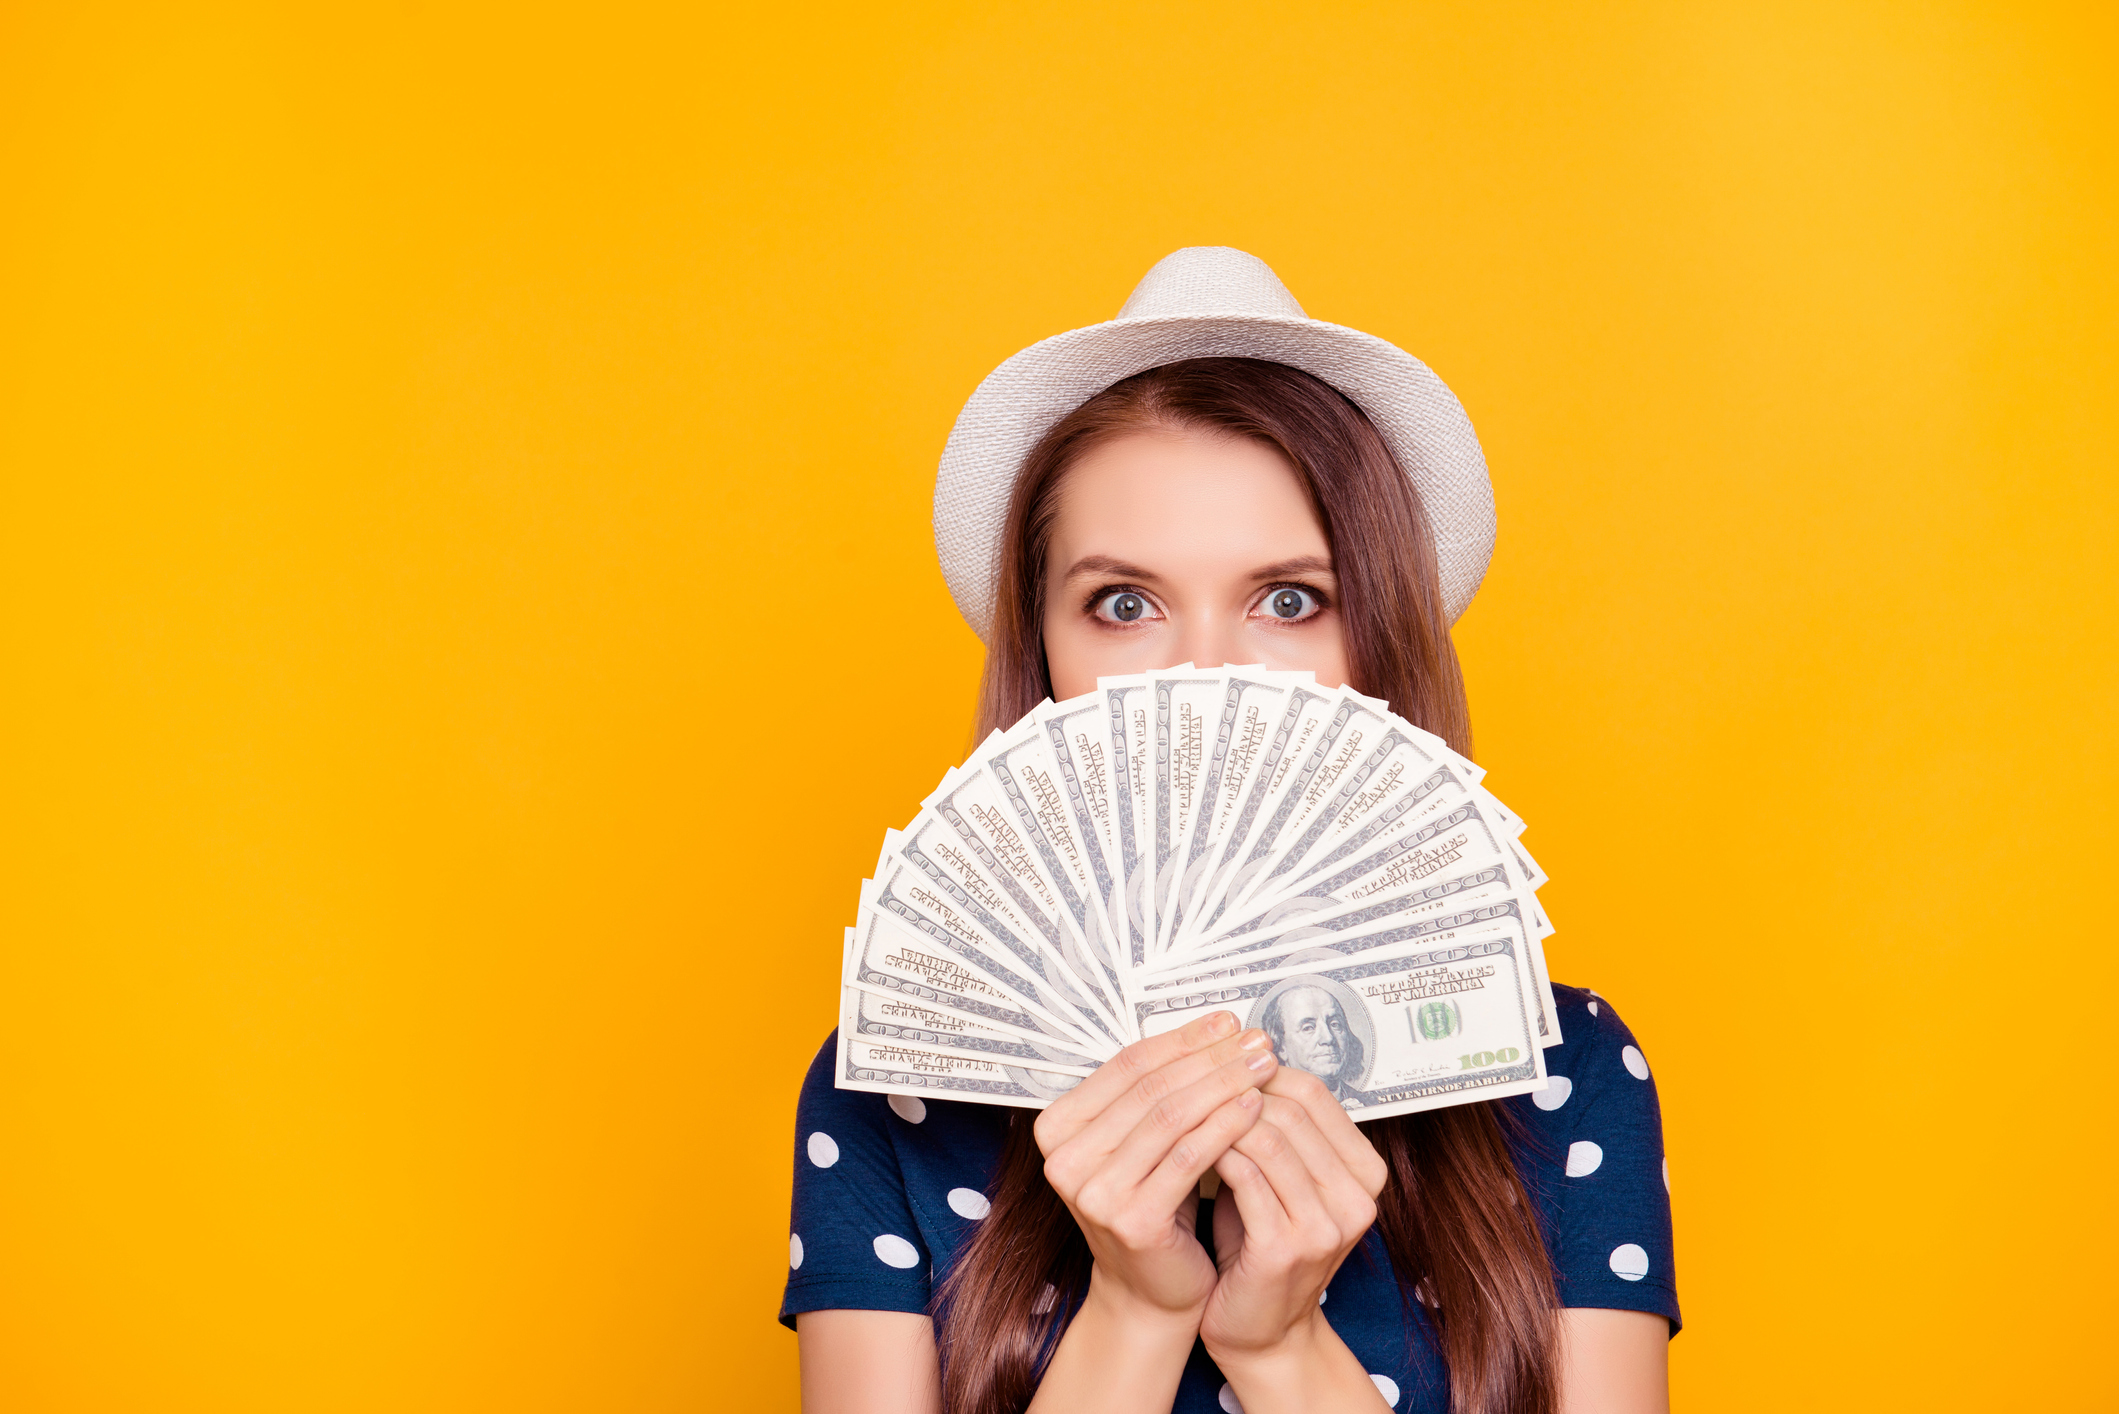 A young woman wearing a hat holds a fan of hundred dollar bills.